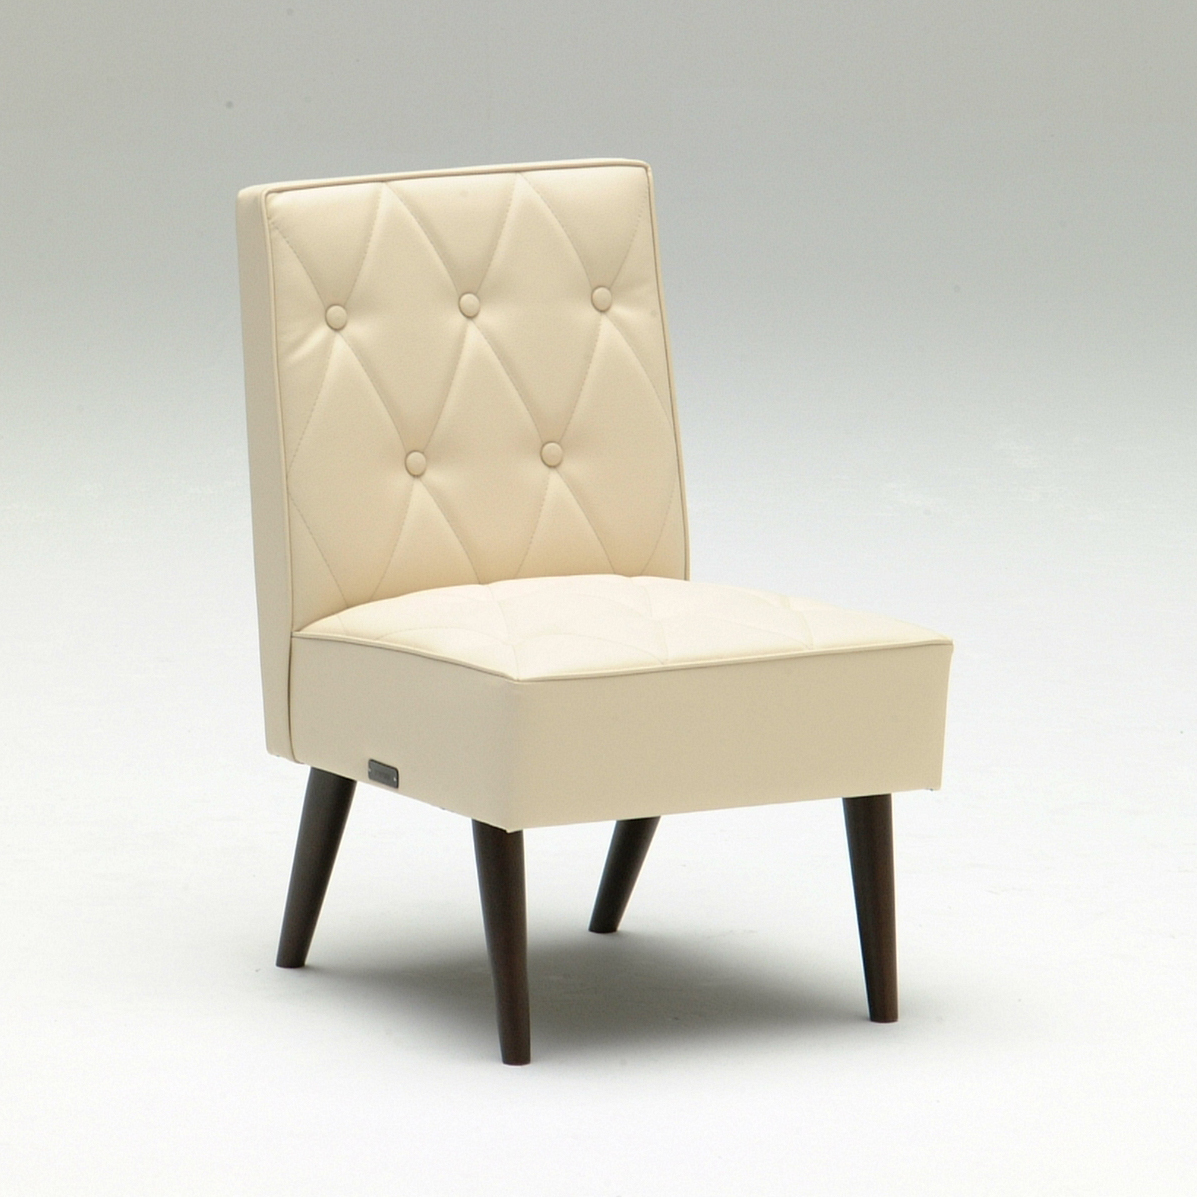 X36305HDCafe-chair_standard ivory